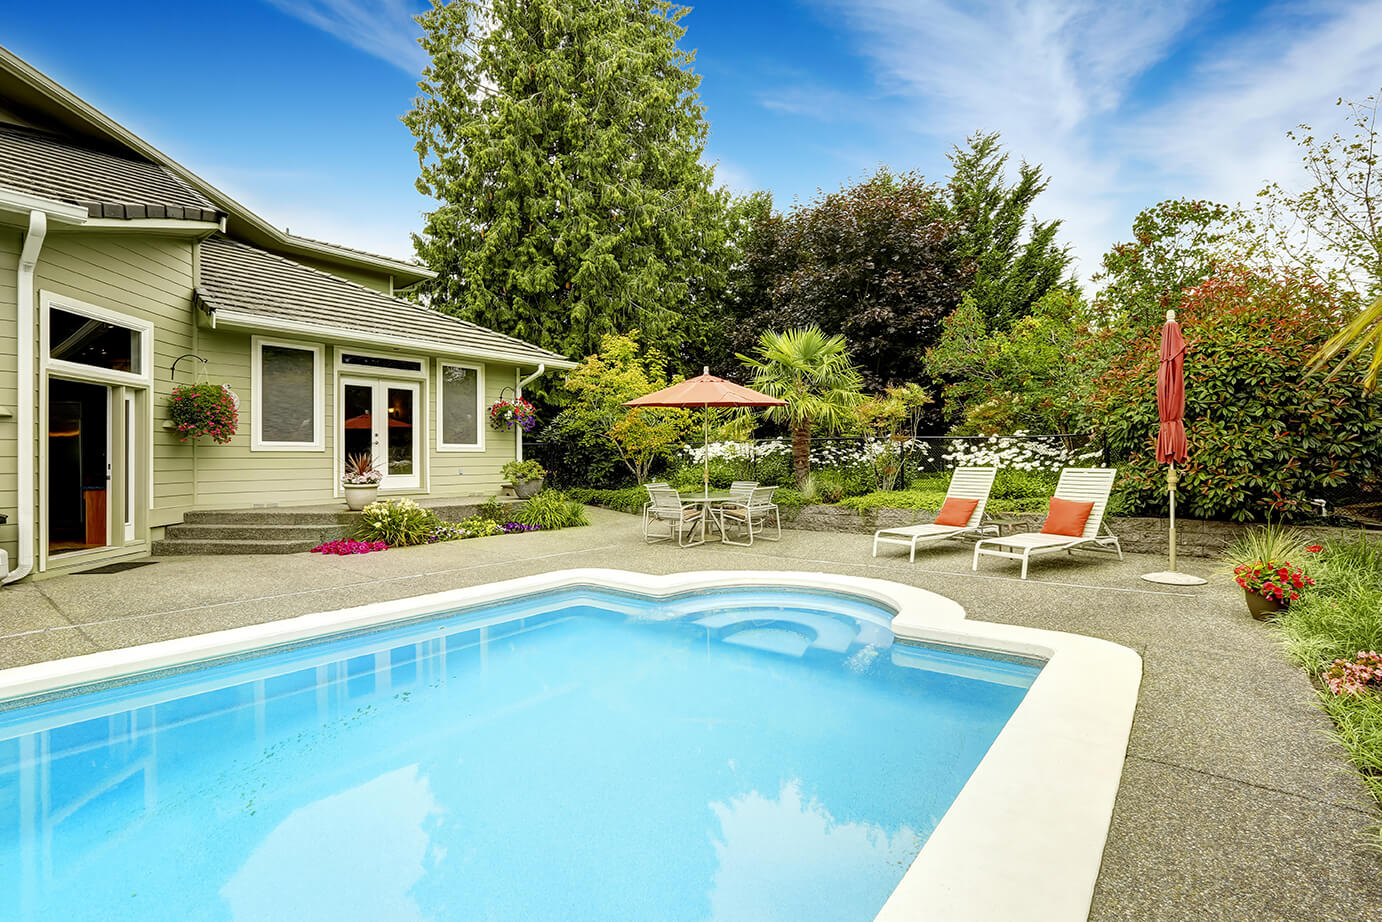 8 Things To Consider If You Re Considering A Pool Resurfacing